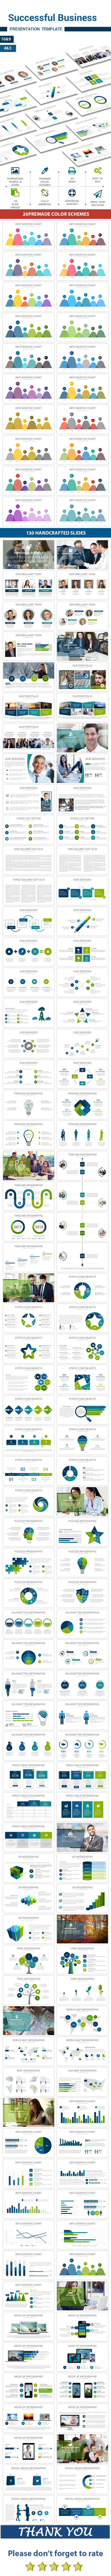 Successful Business PowerPoint Presentation Template